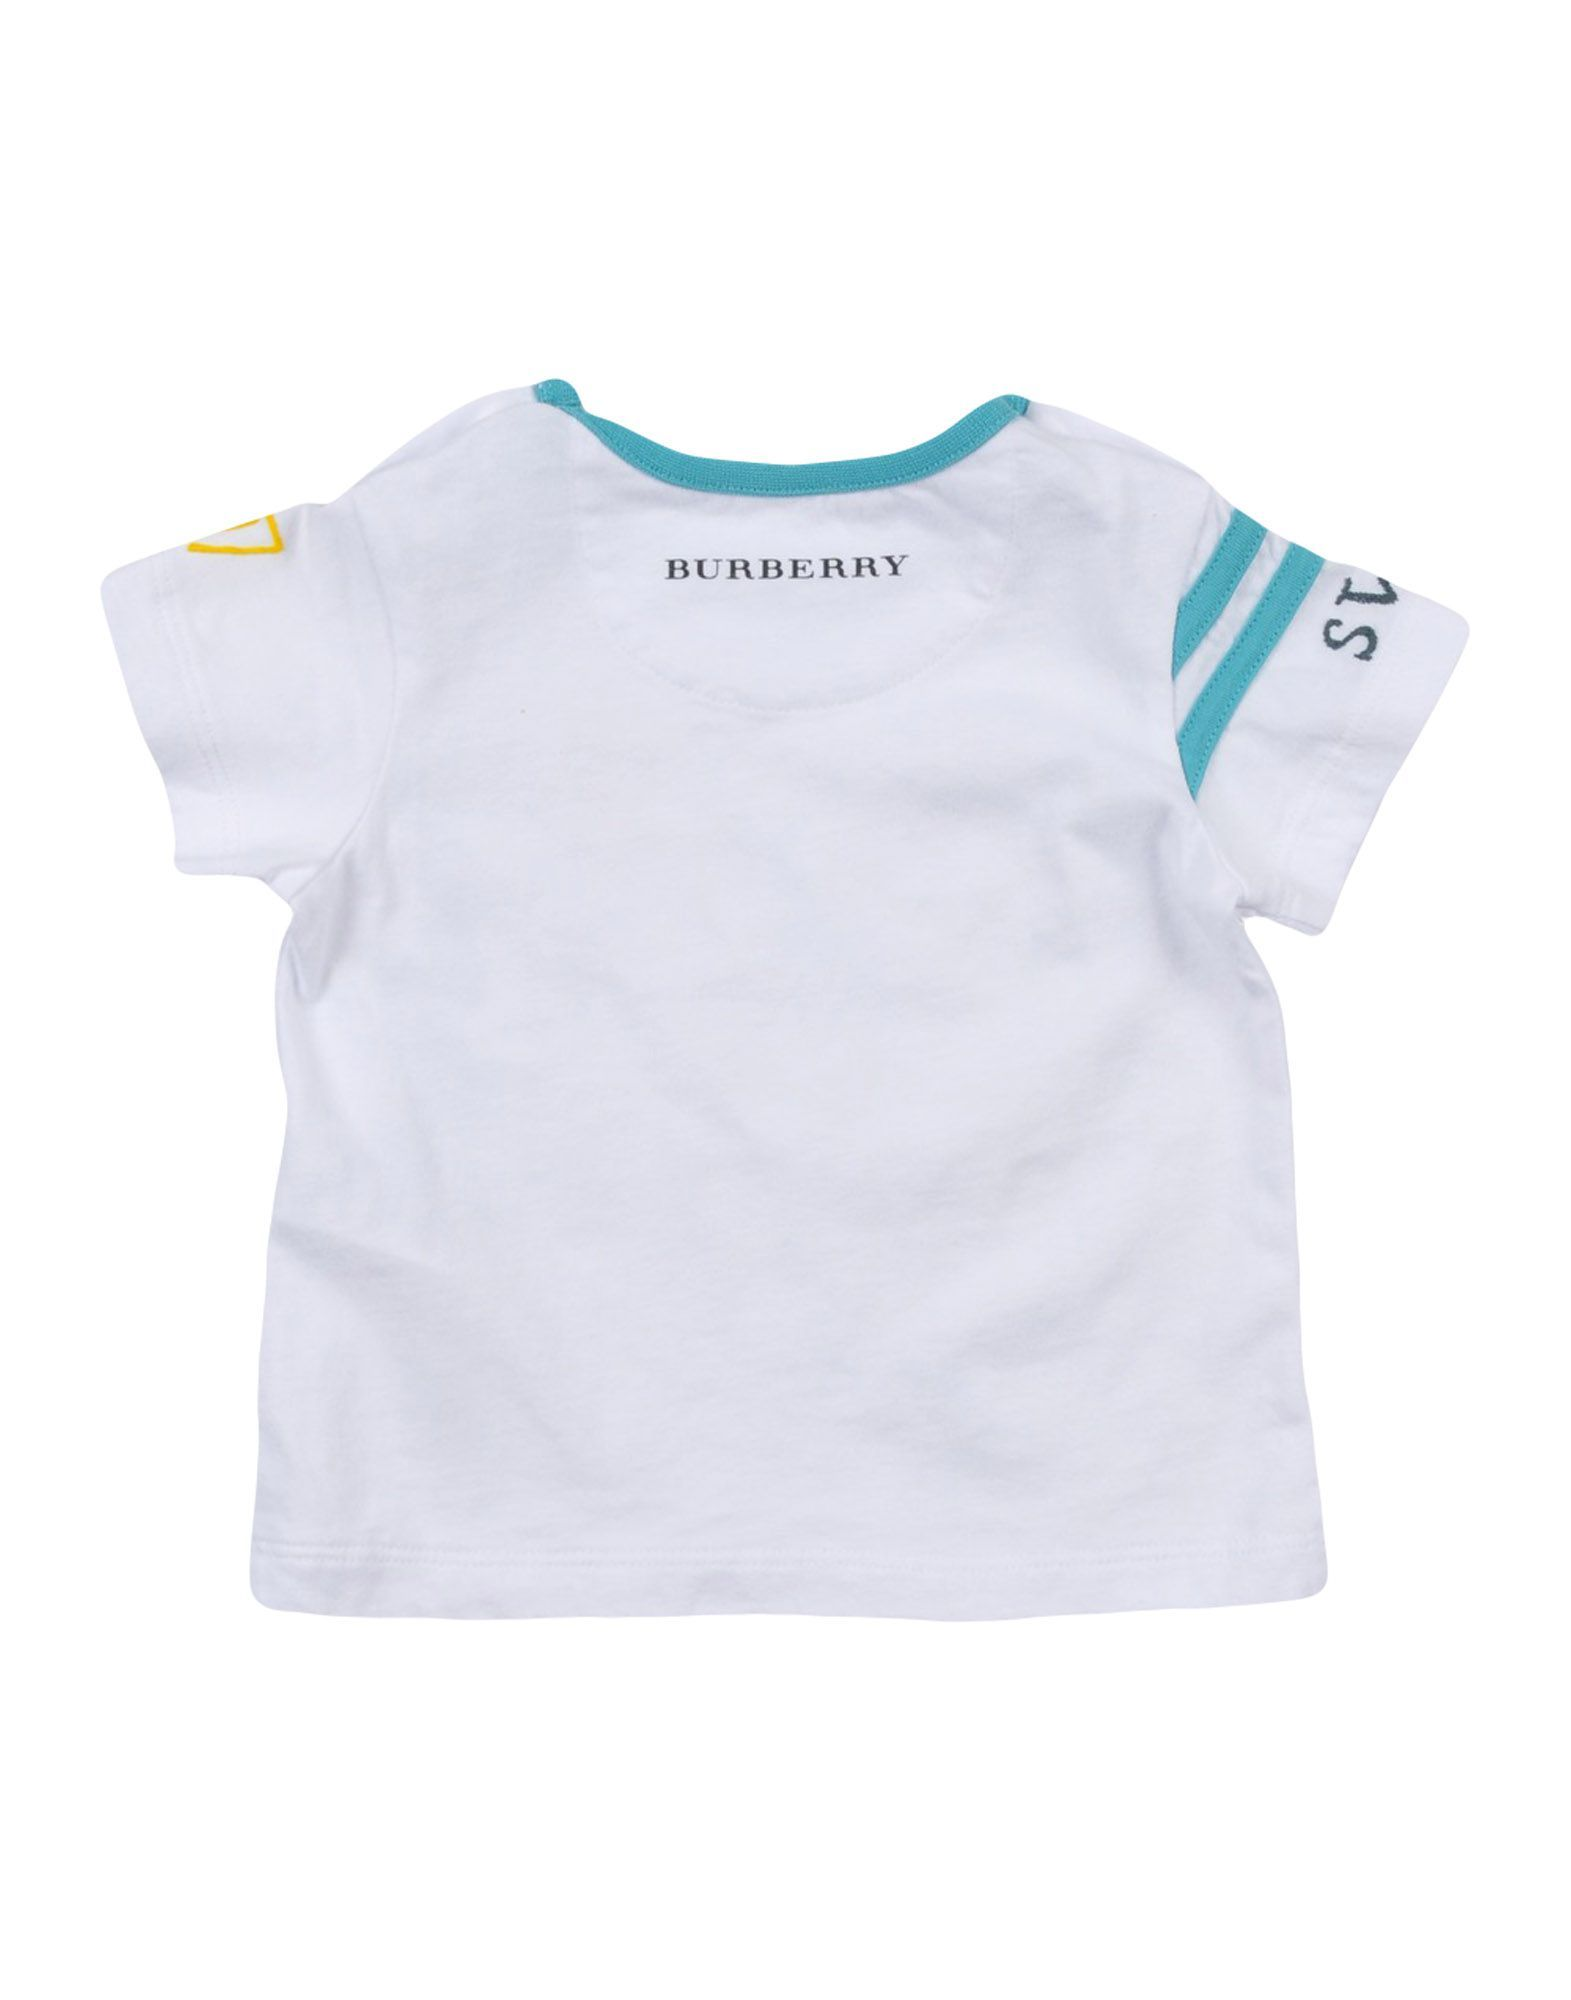 TOPWEAR Burberry White Boy Cotton